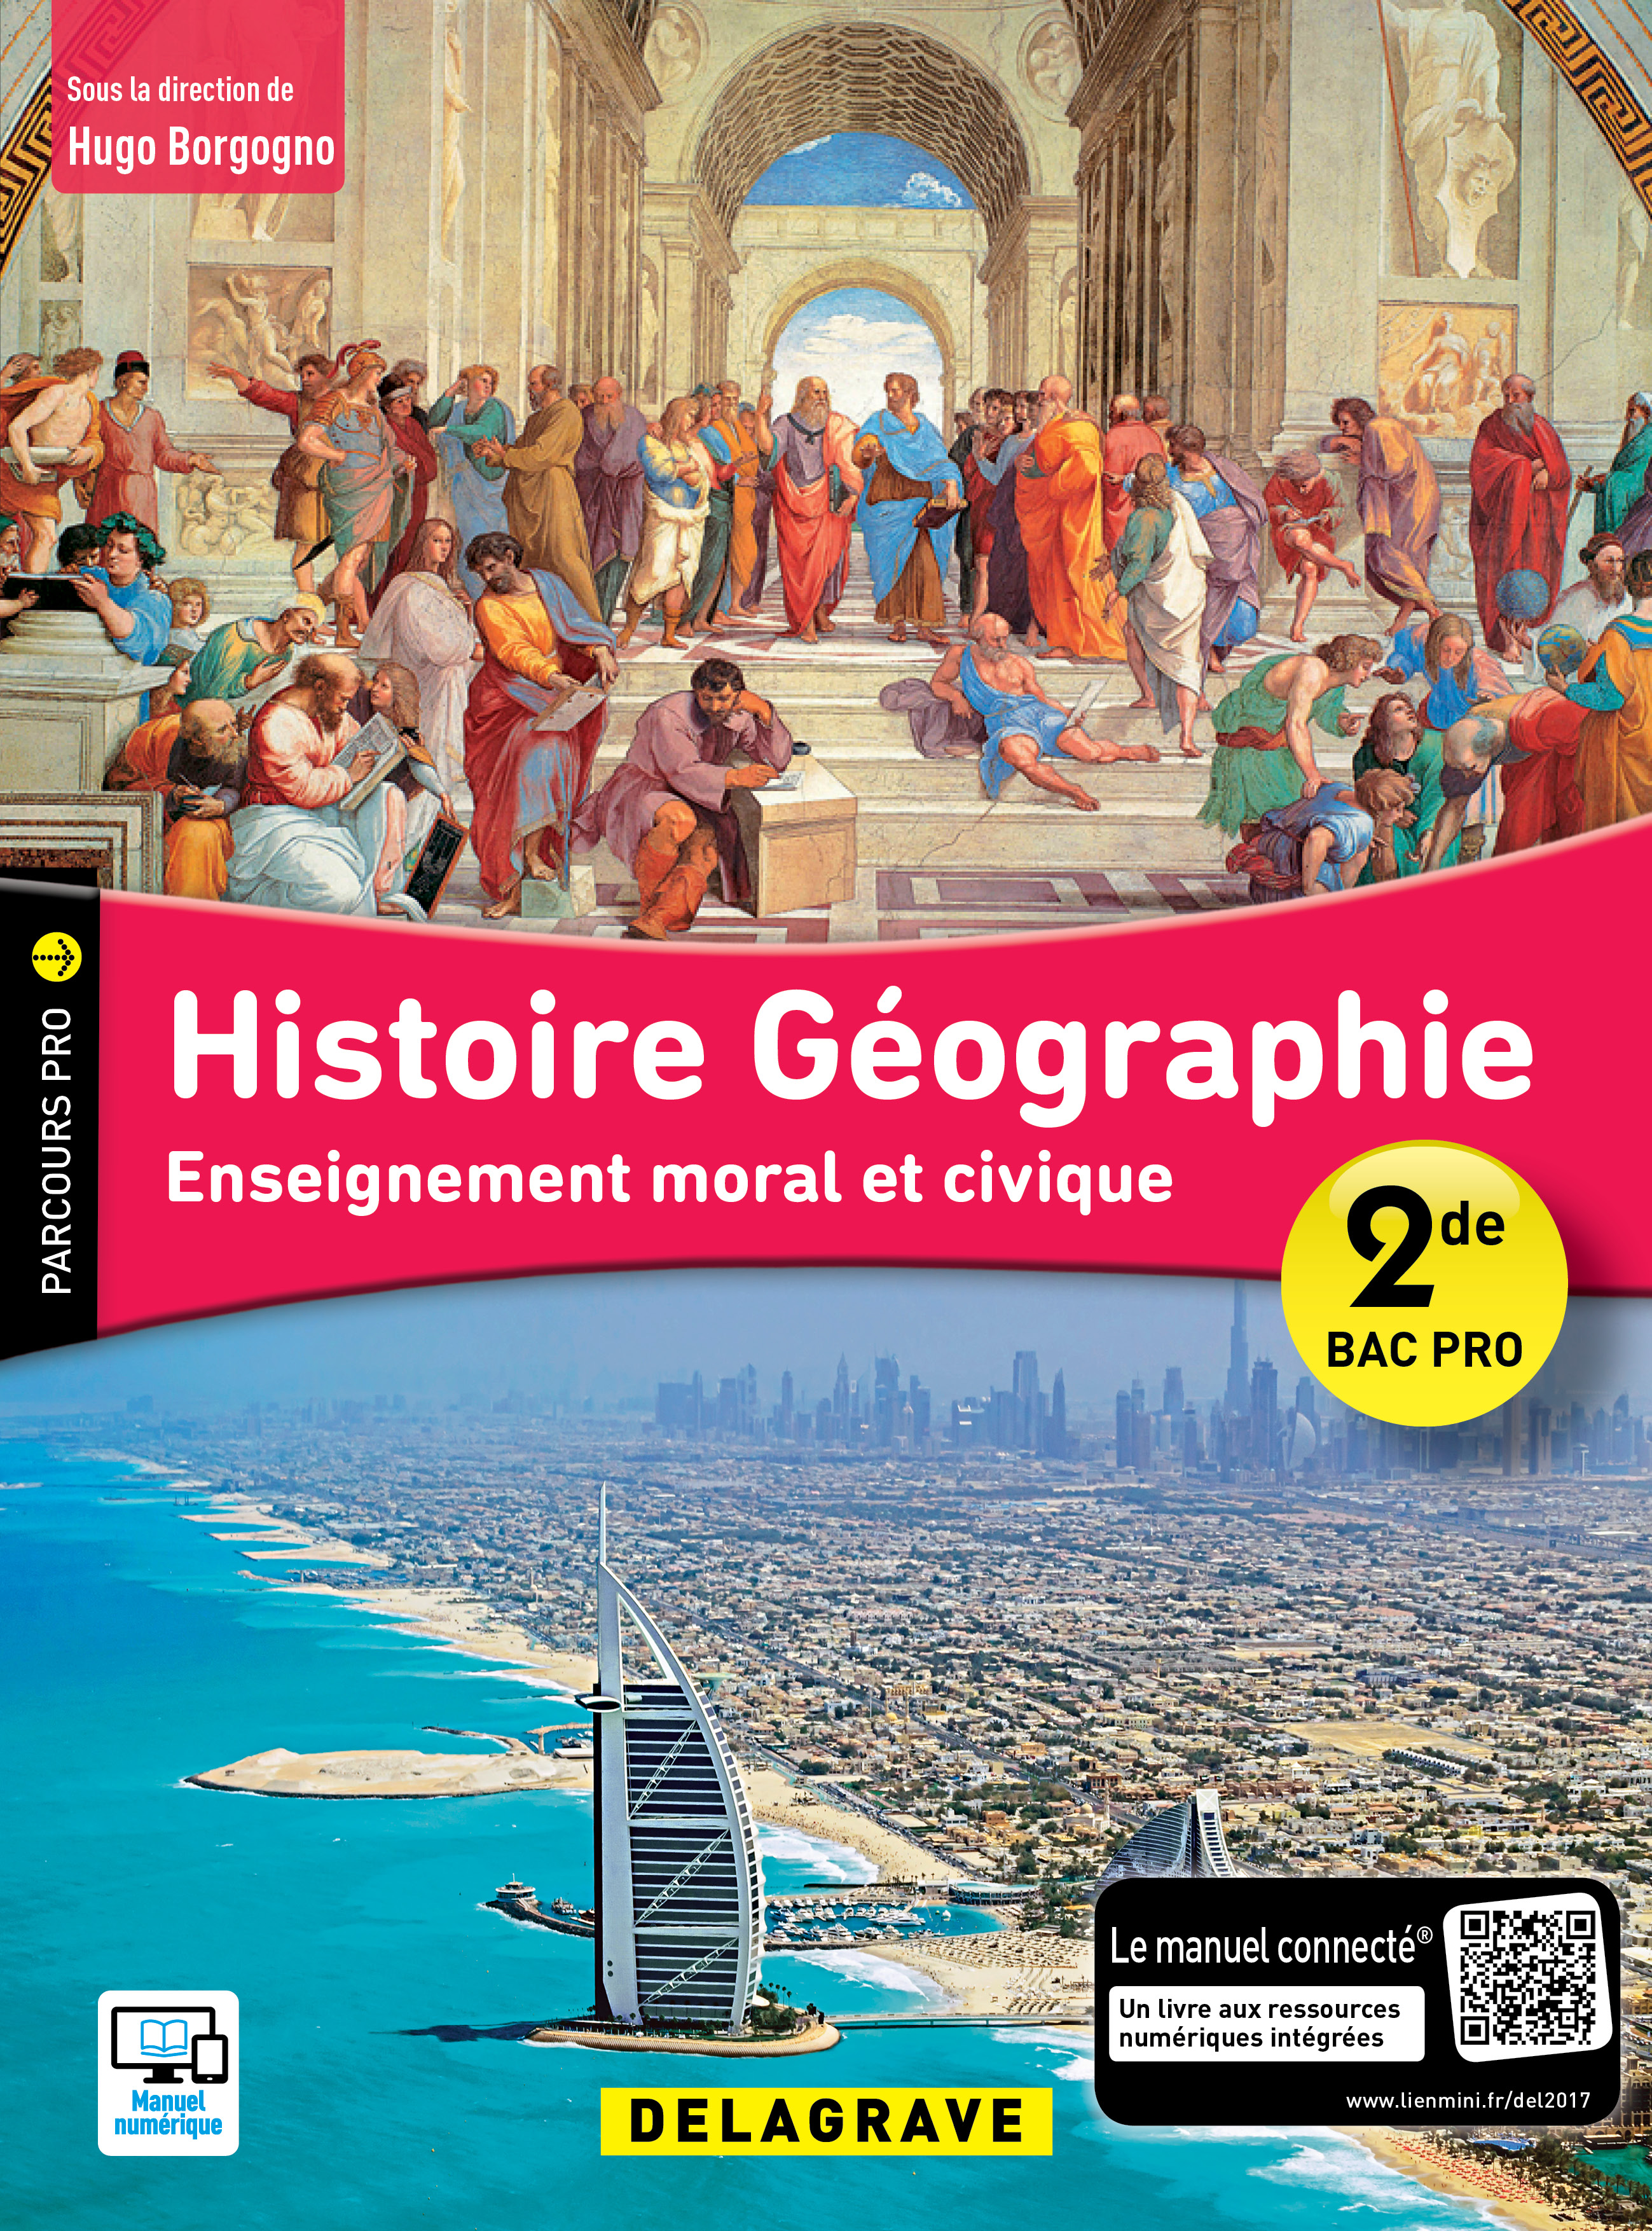 Telecharger Histoire Geographie Pdf Emc Montpellier